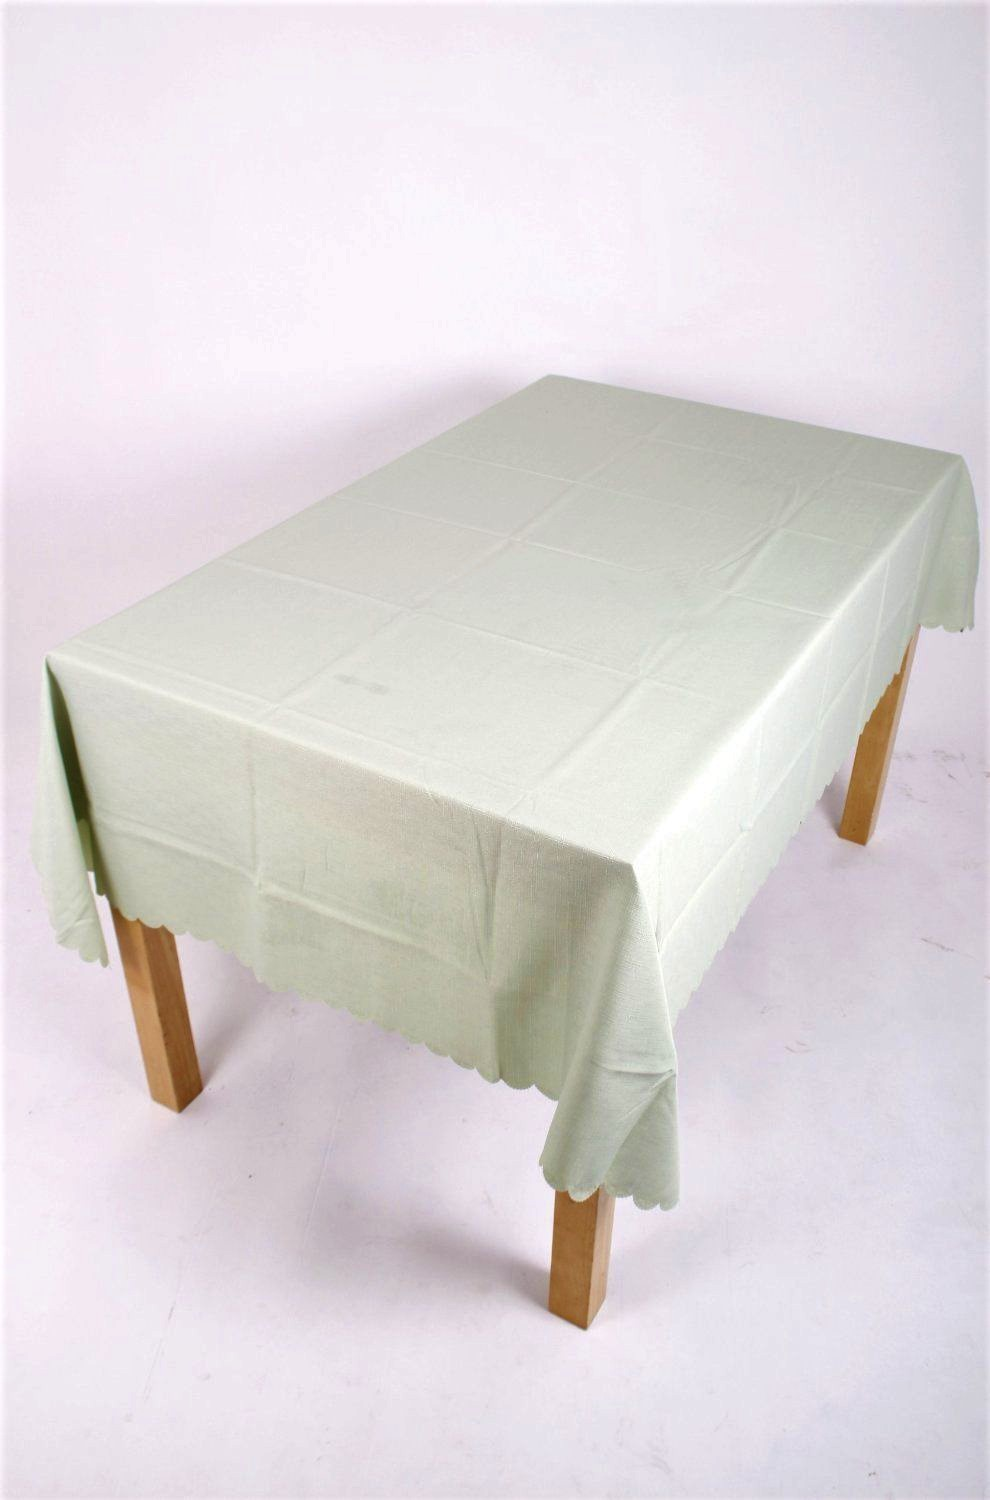 Shell Tablecloth Meadow Green 137x137cm